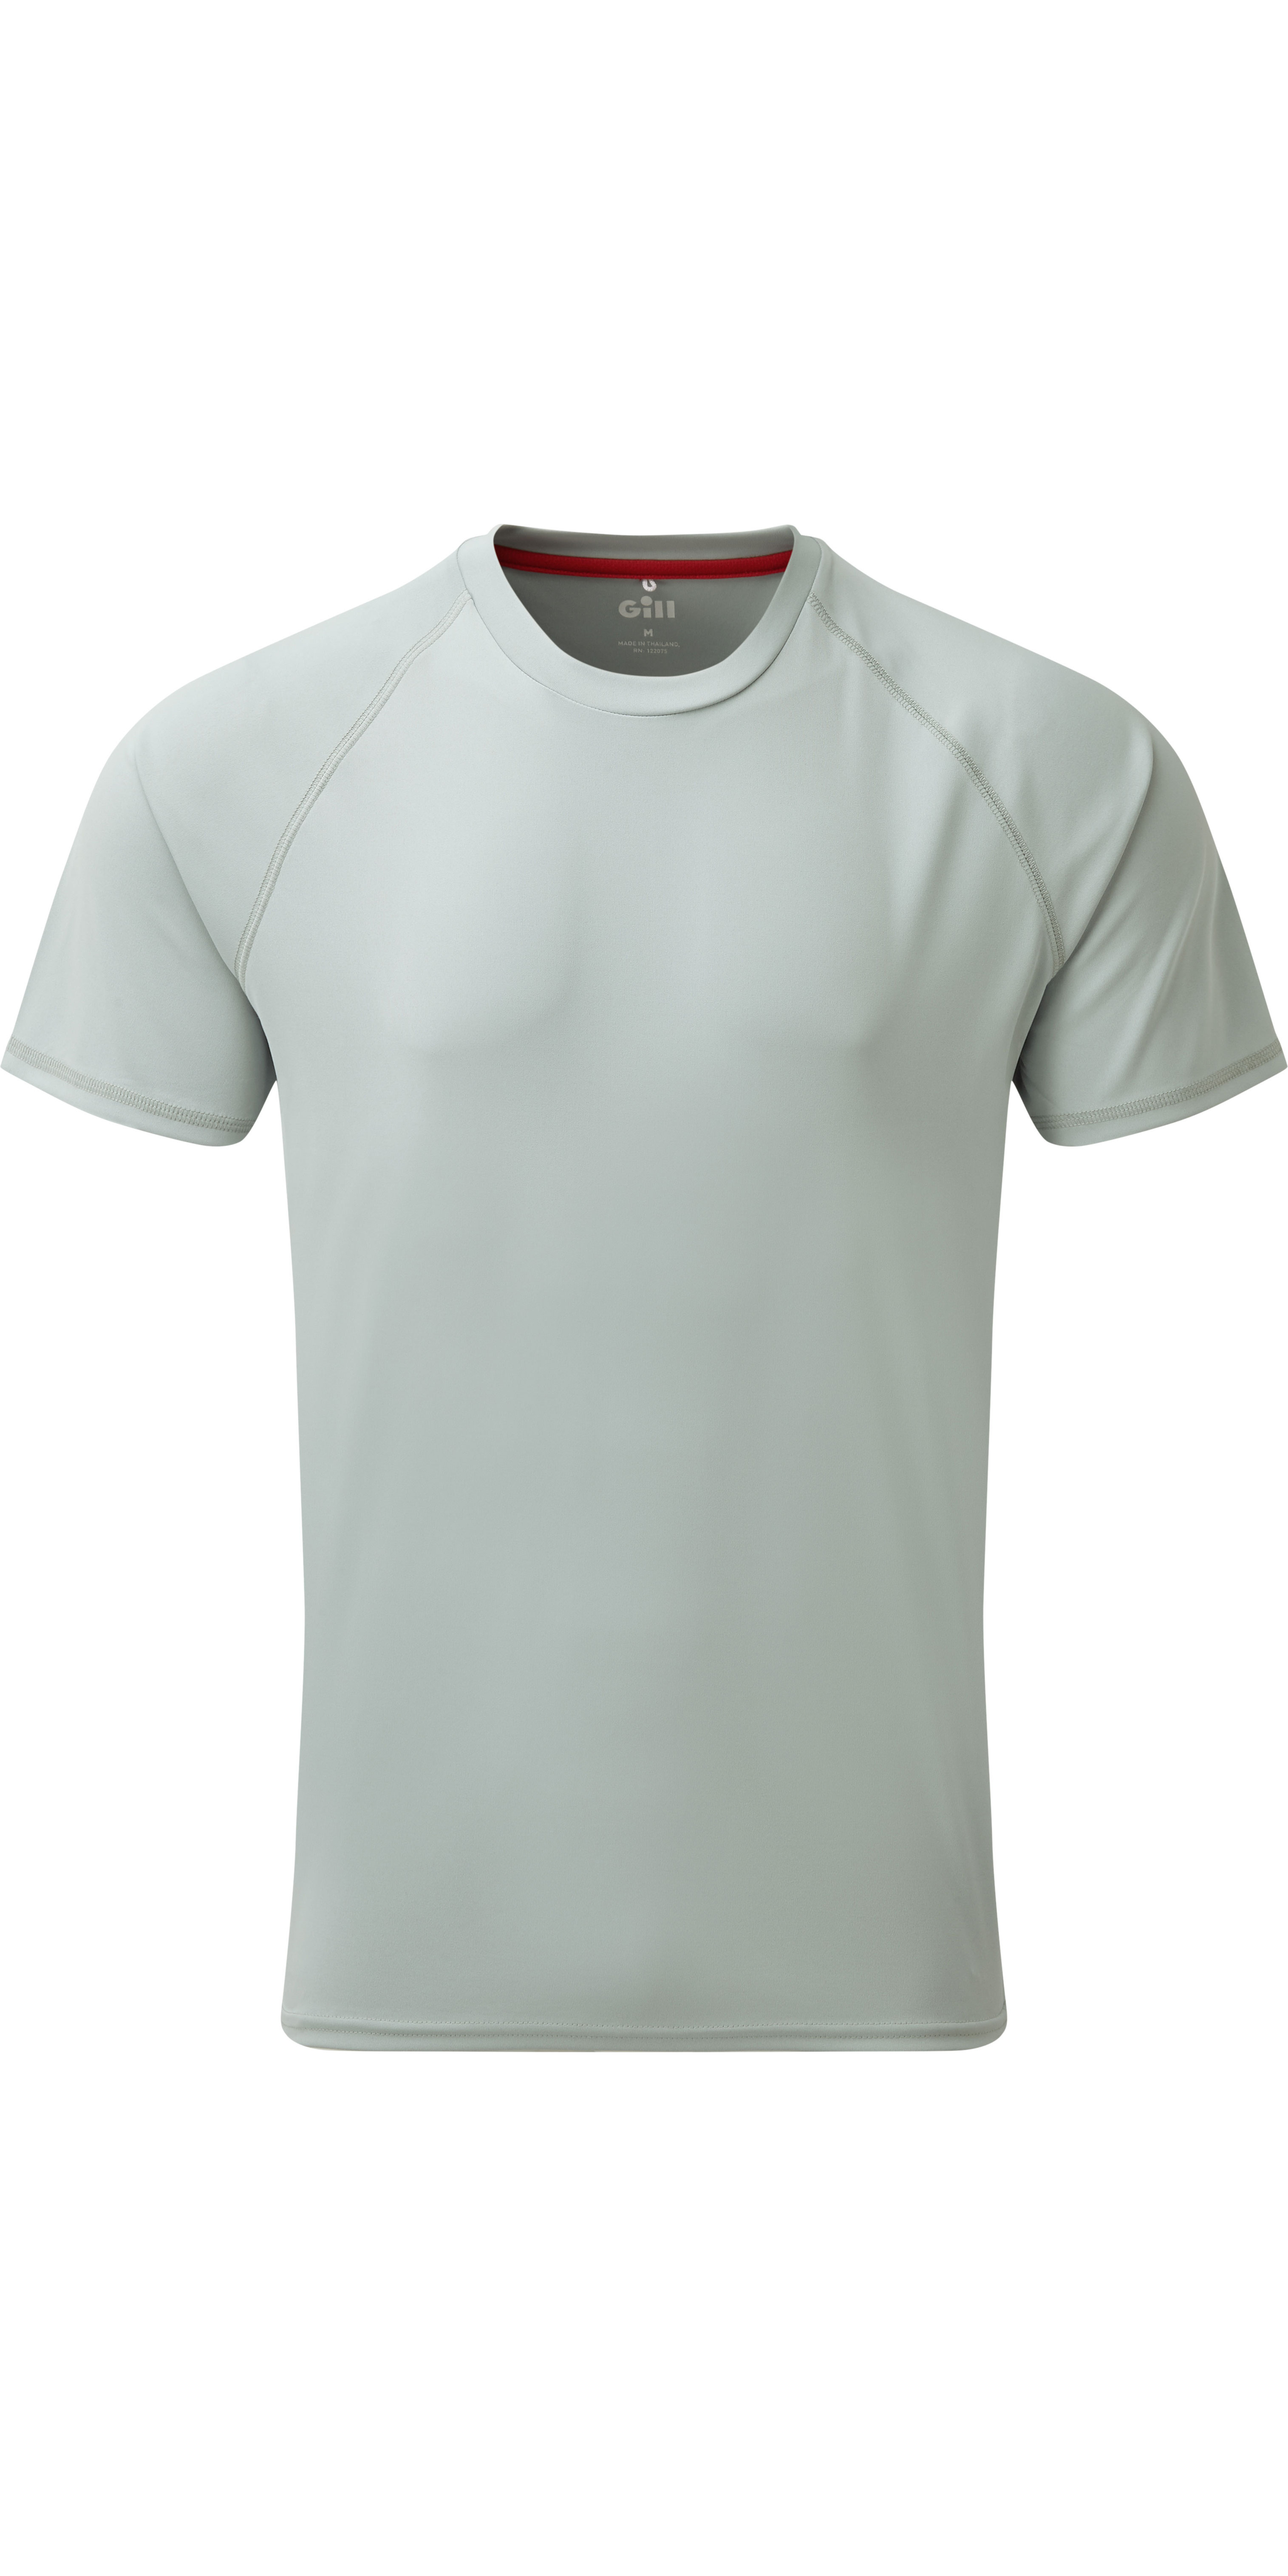 79de862b4b 2019 Gill Mens Uv Tec Tee Grey Uv010 - Sailing Tops & T Shirts - Shore Wear  - Sailing | Wetsuit Outlet